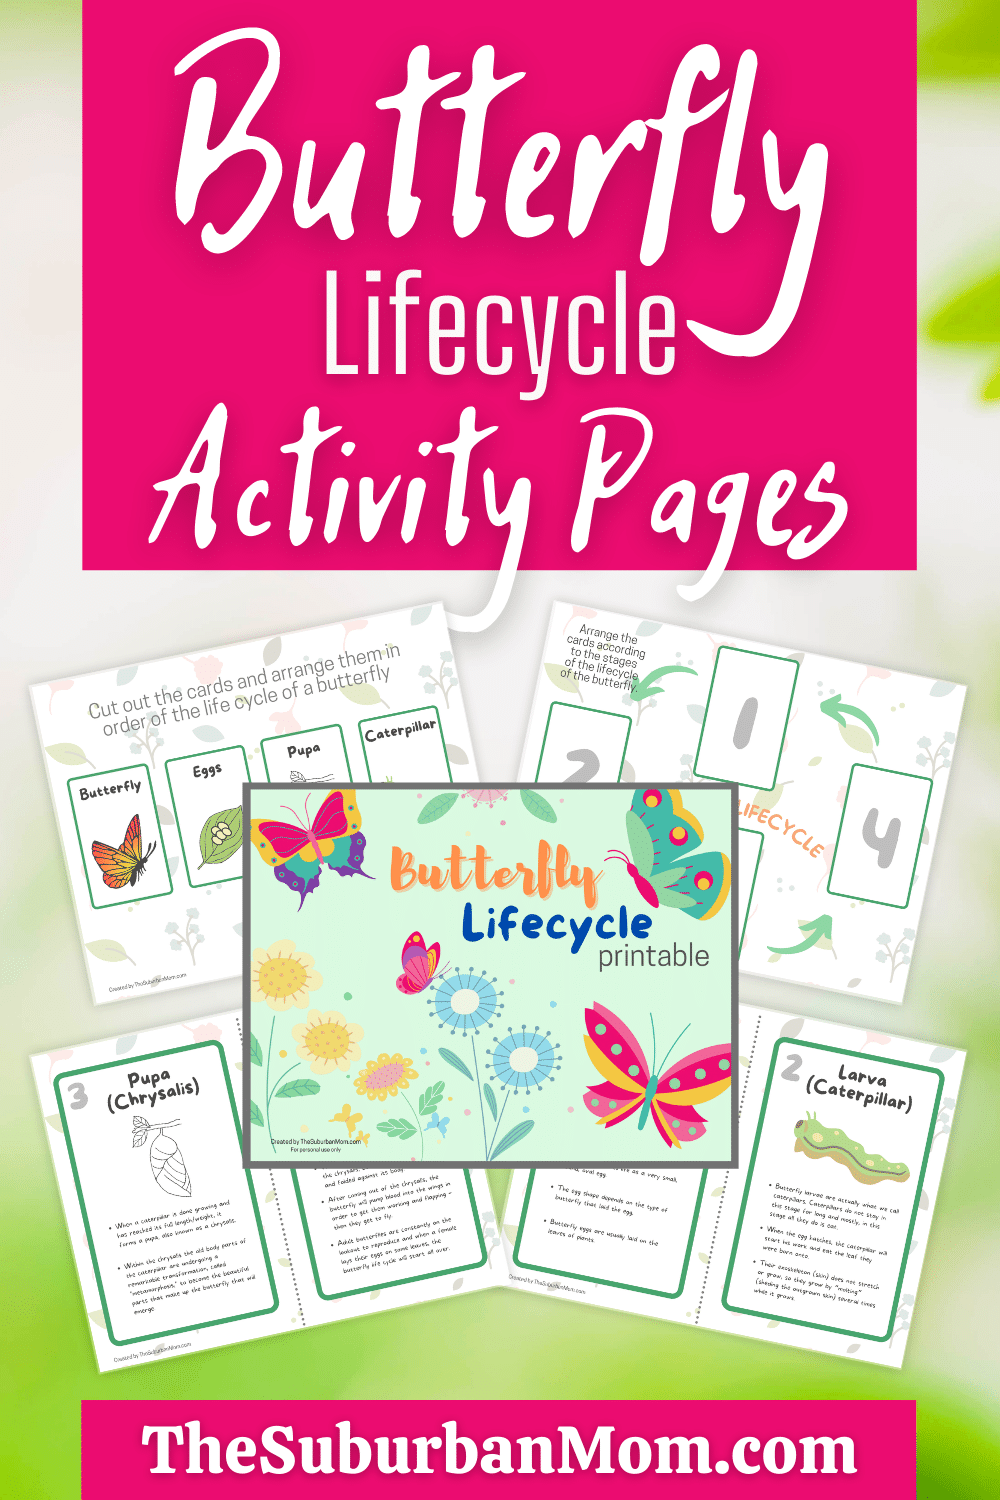 Butterfly Lifecycle Activity Pages